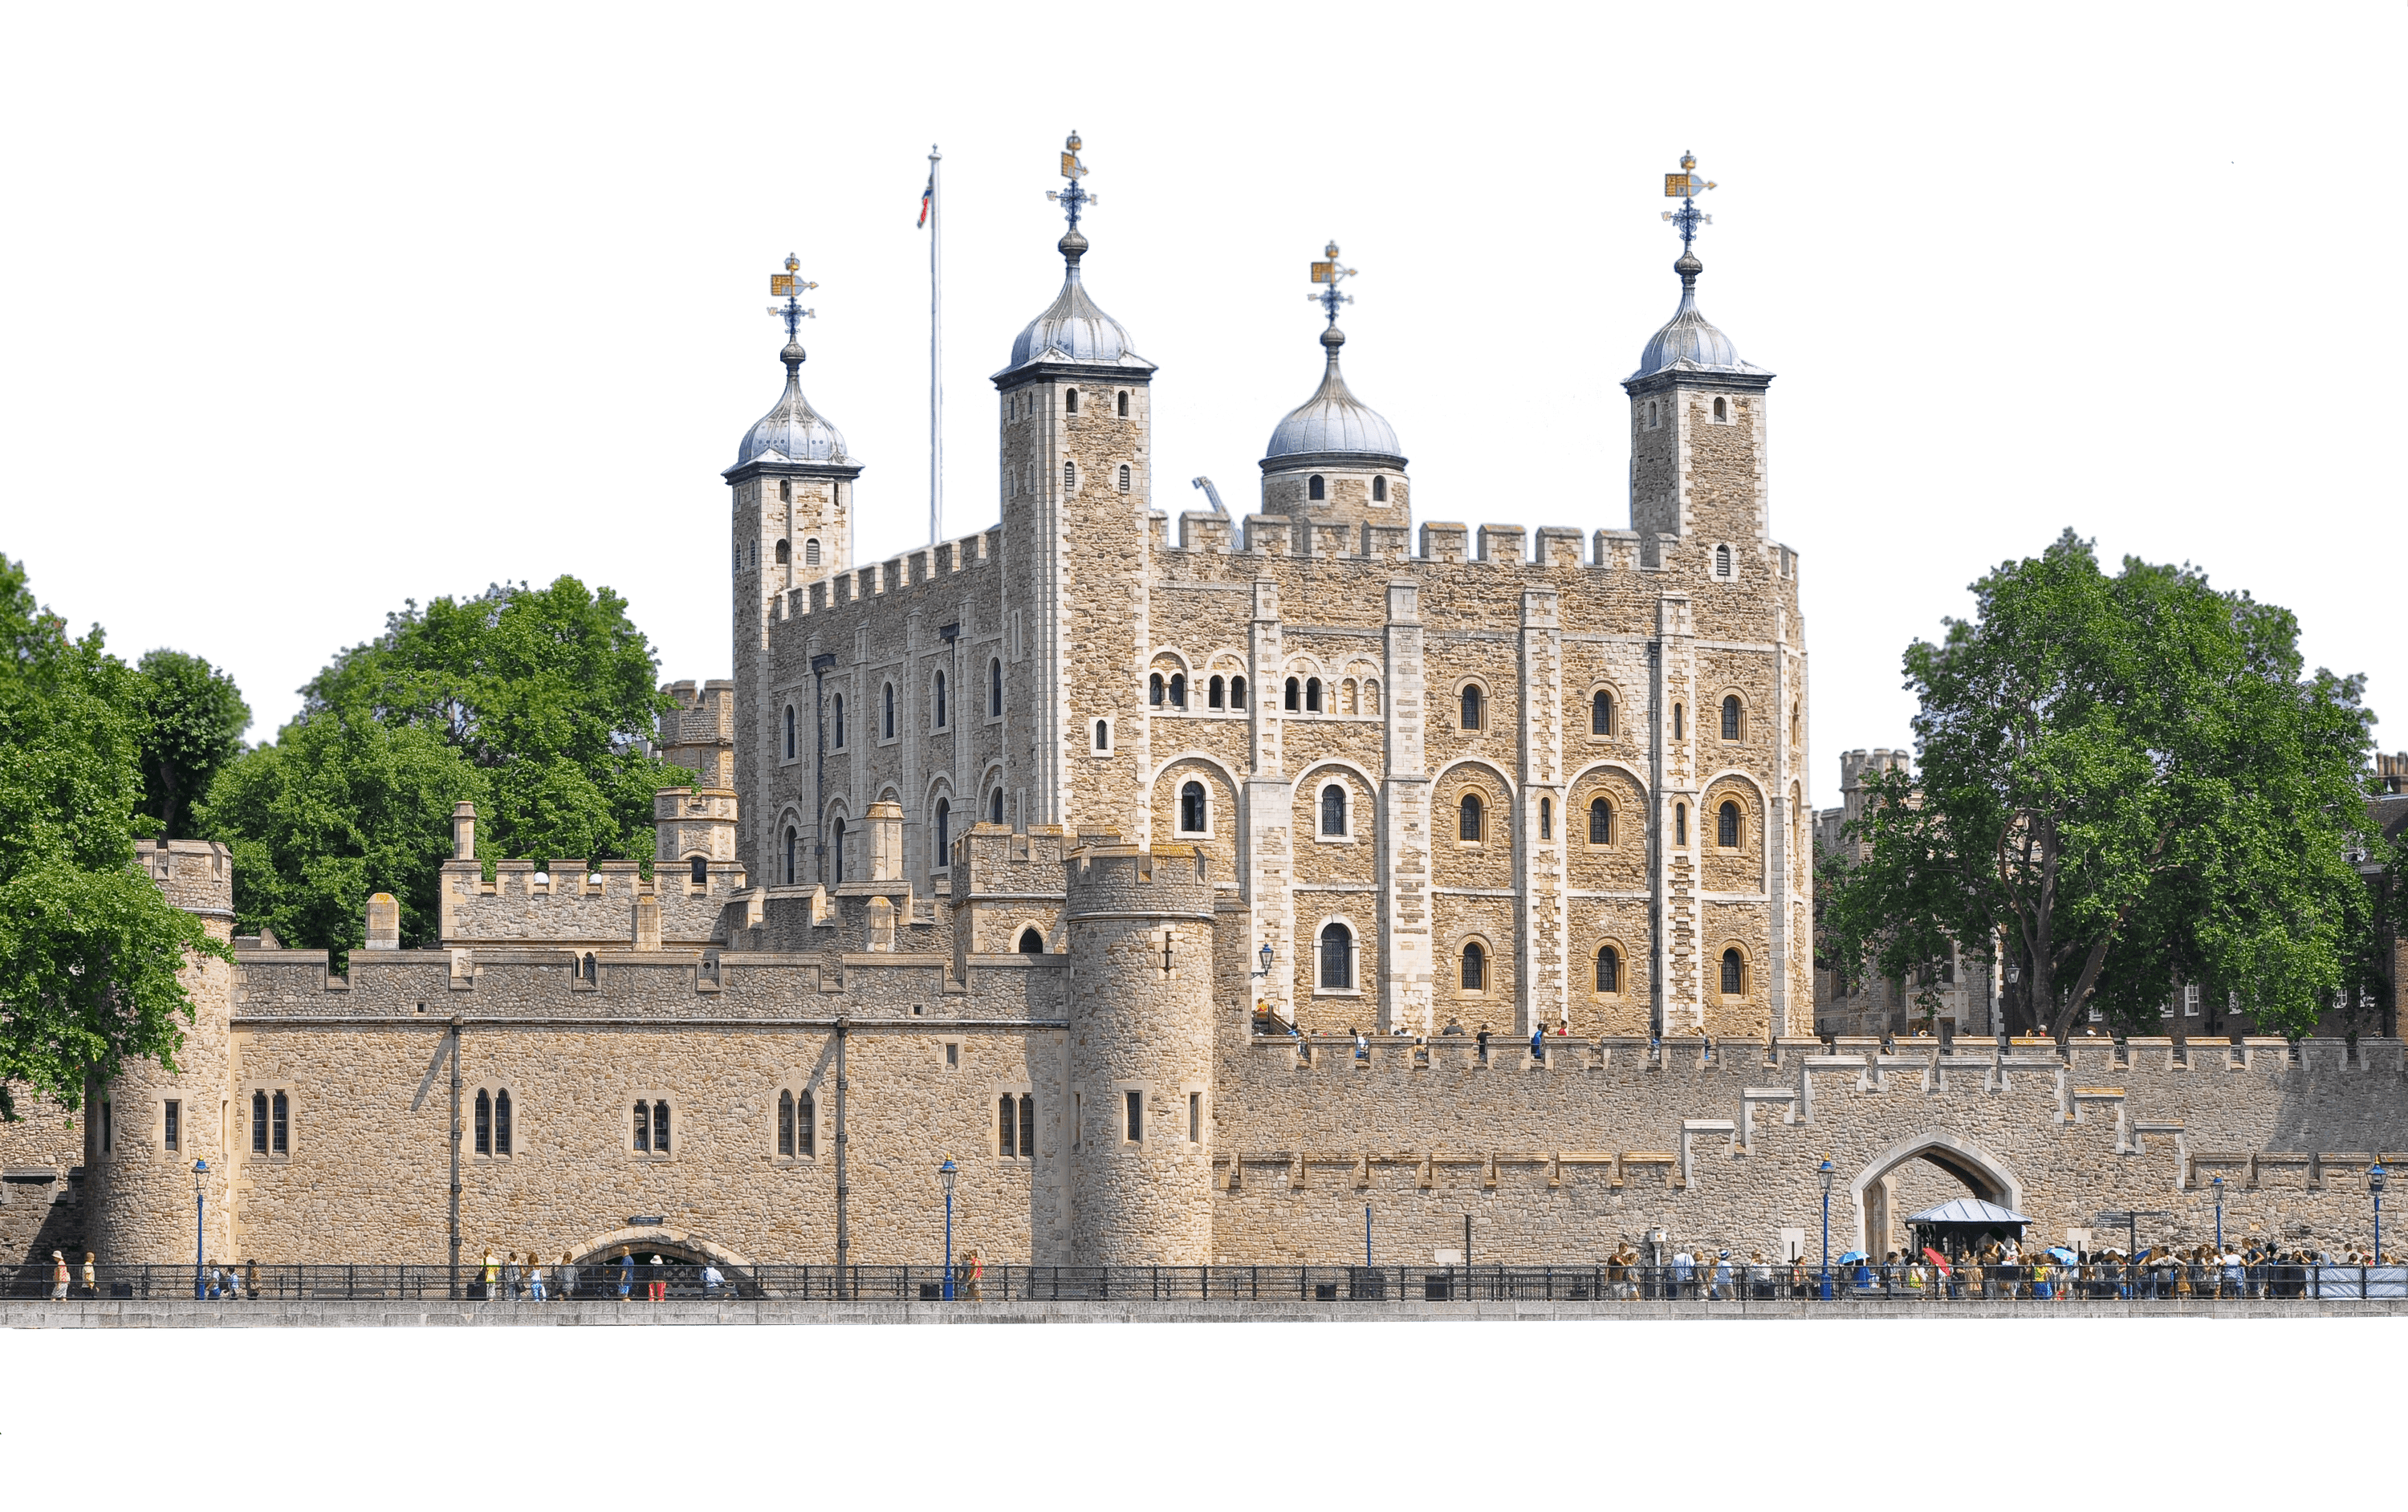 Clipart tower of london graphic royalty free download Tower Of London transparent PNG - StickPNG graphic royalty free download